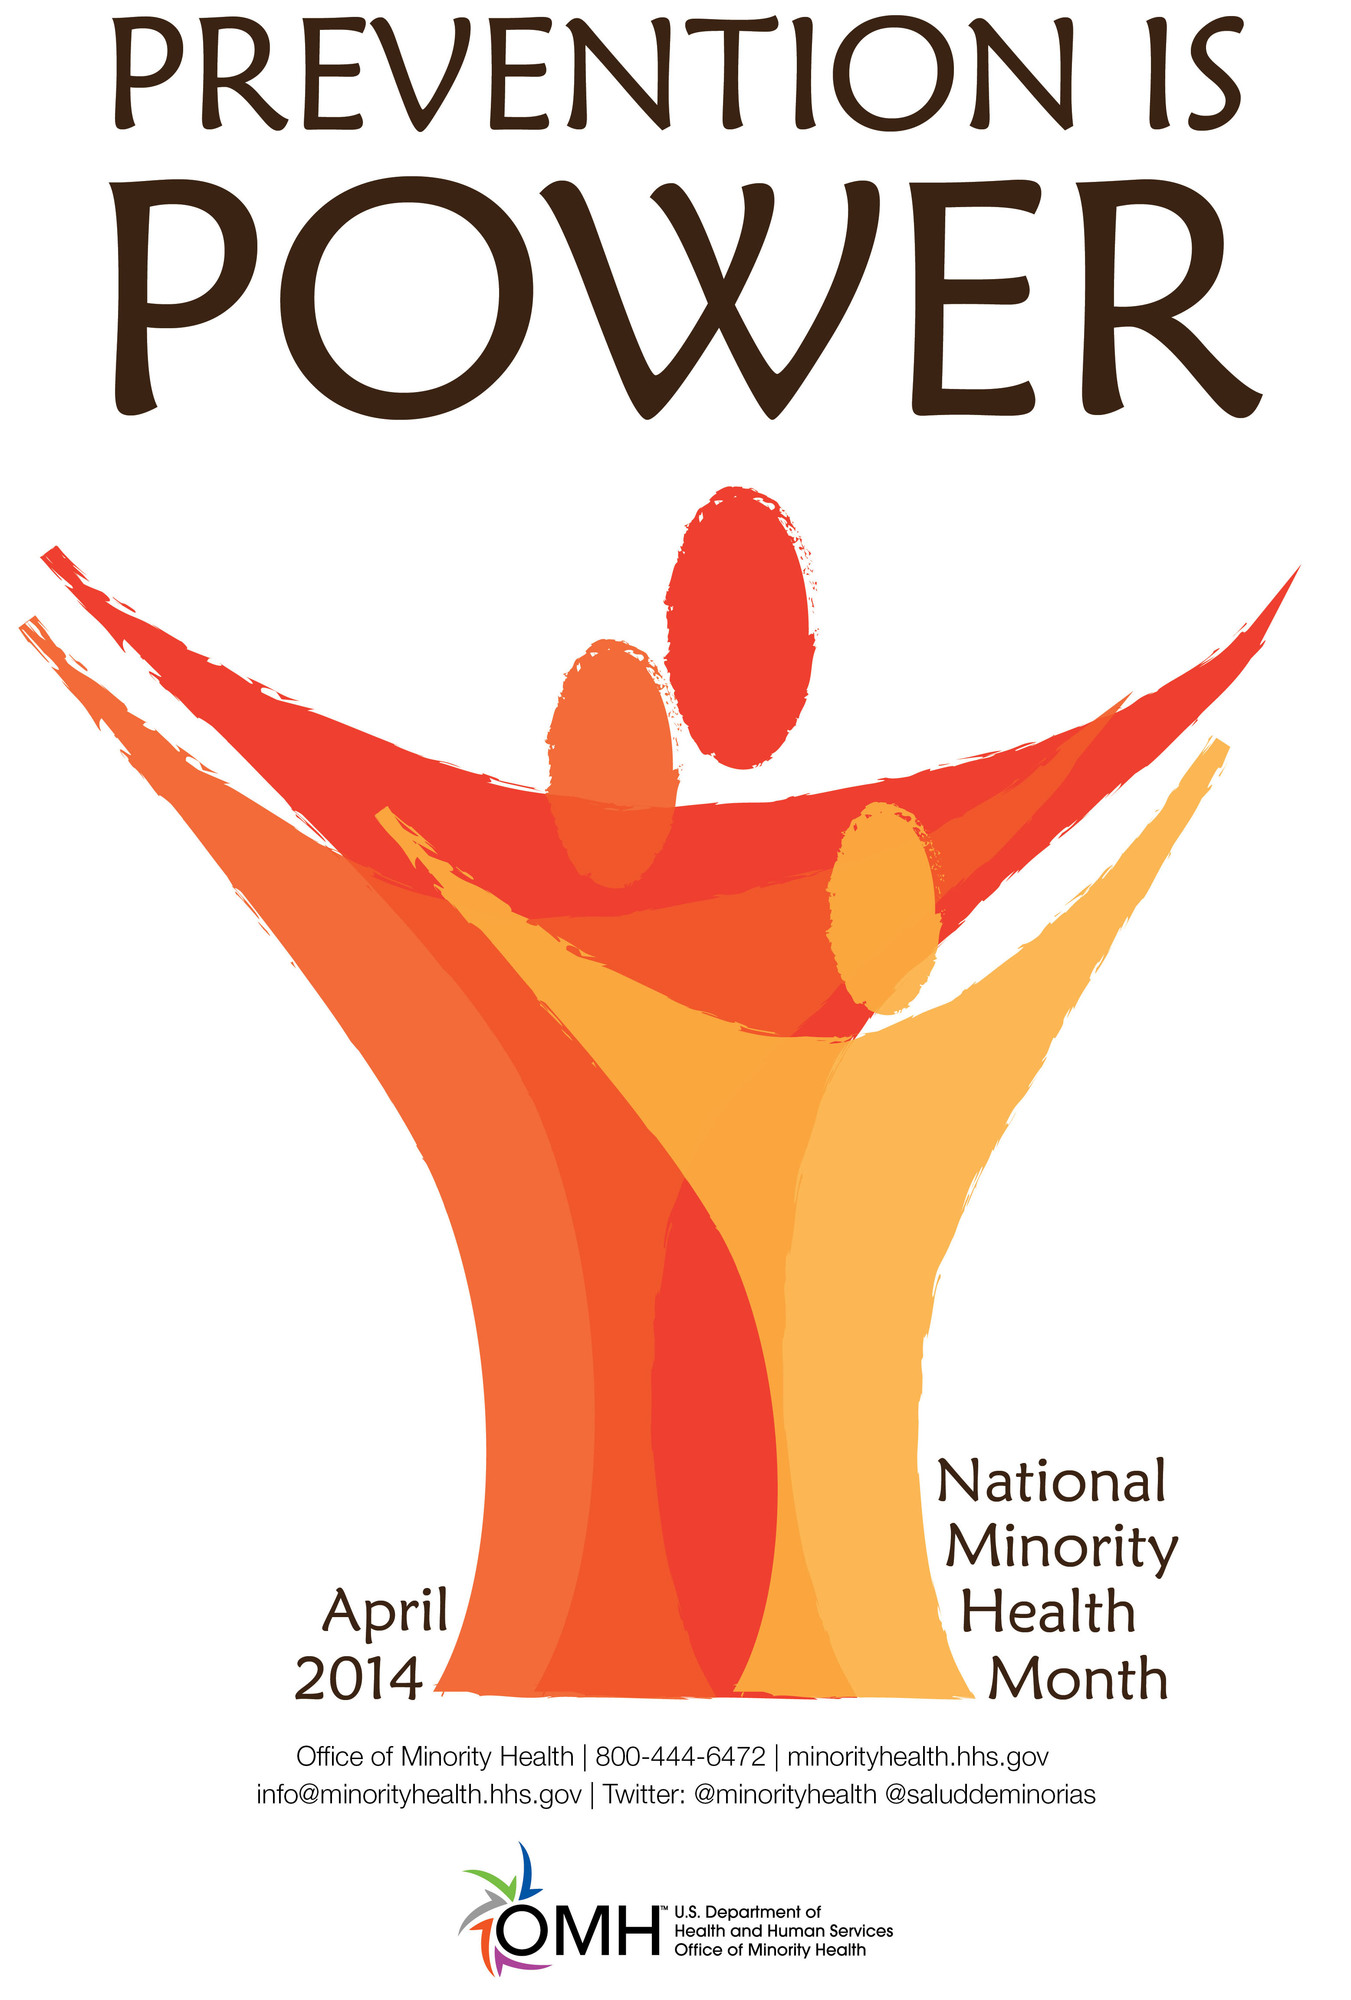 Prevention Is Power: April 2014 is National Minority Health Month